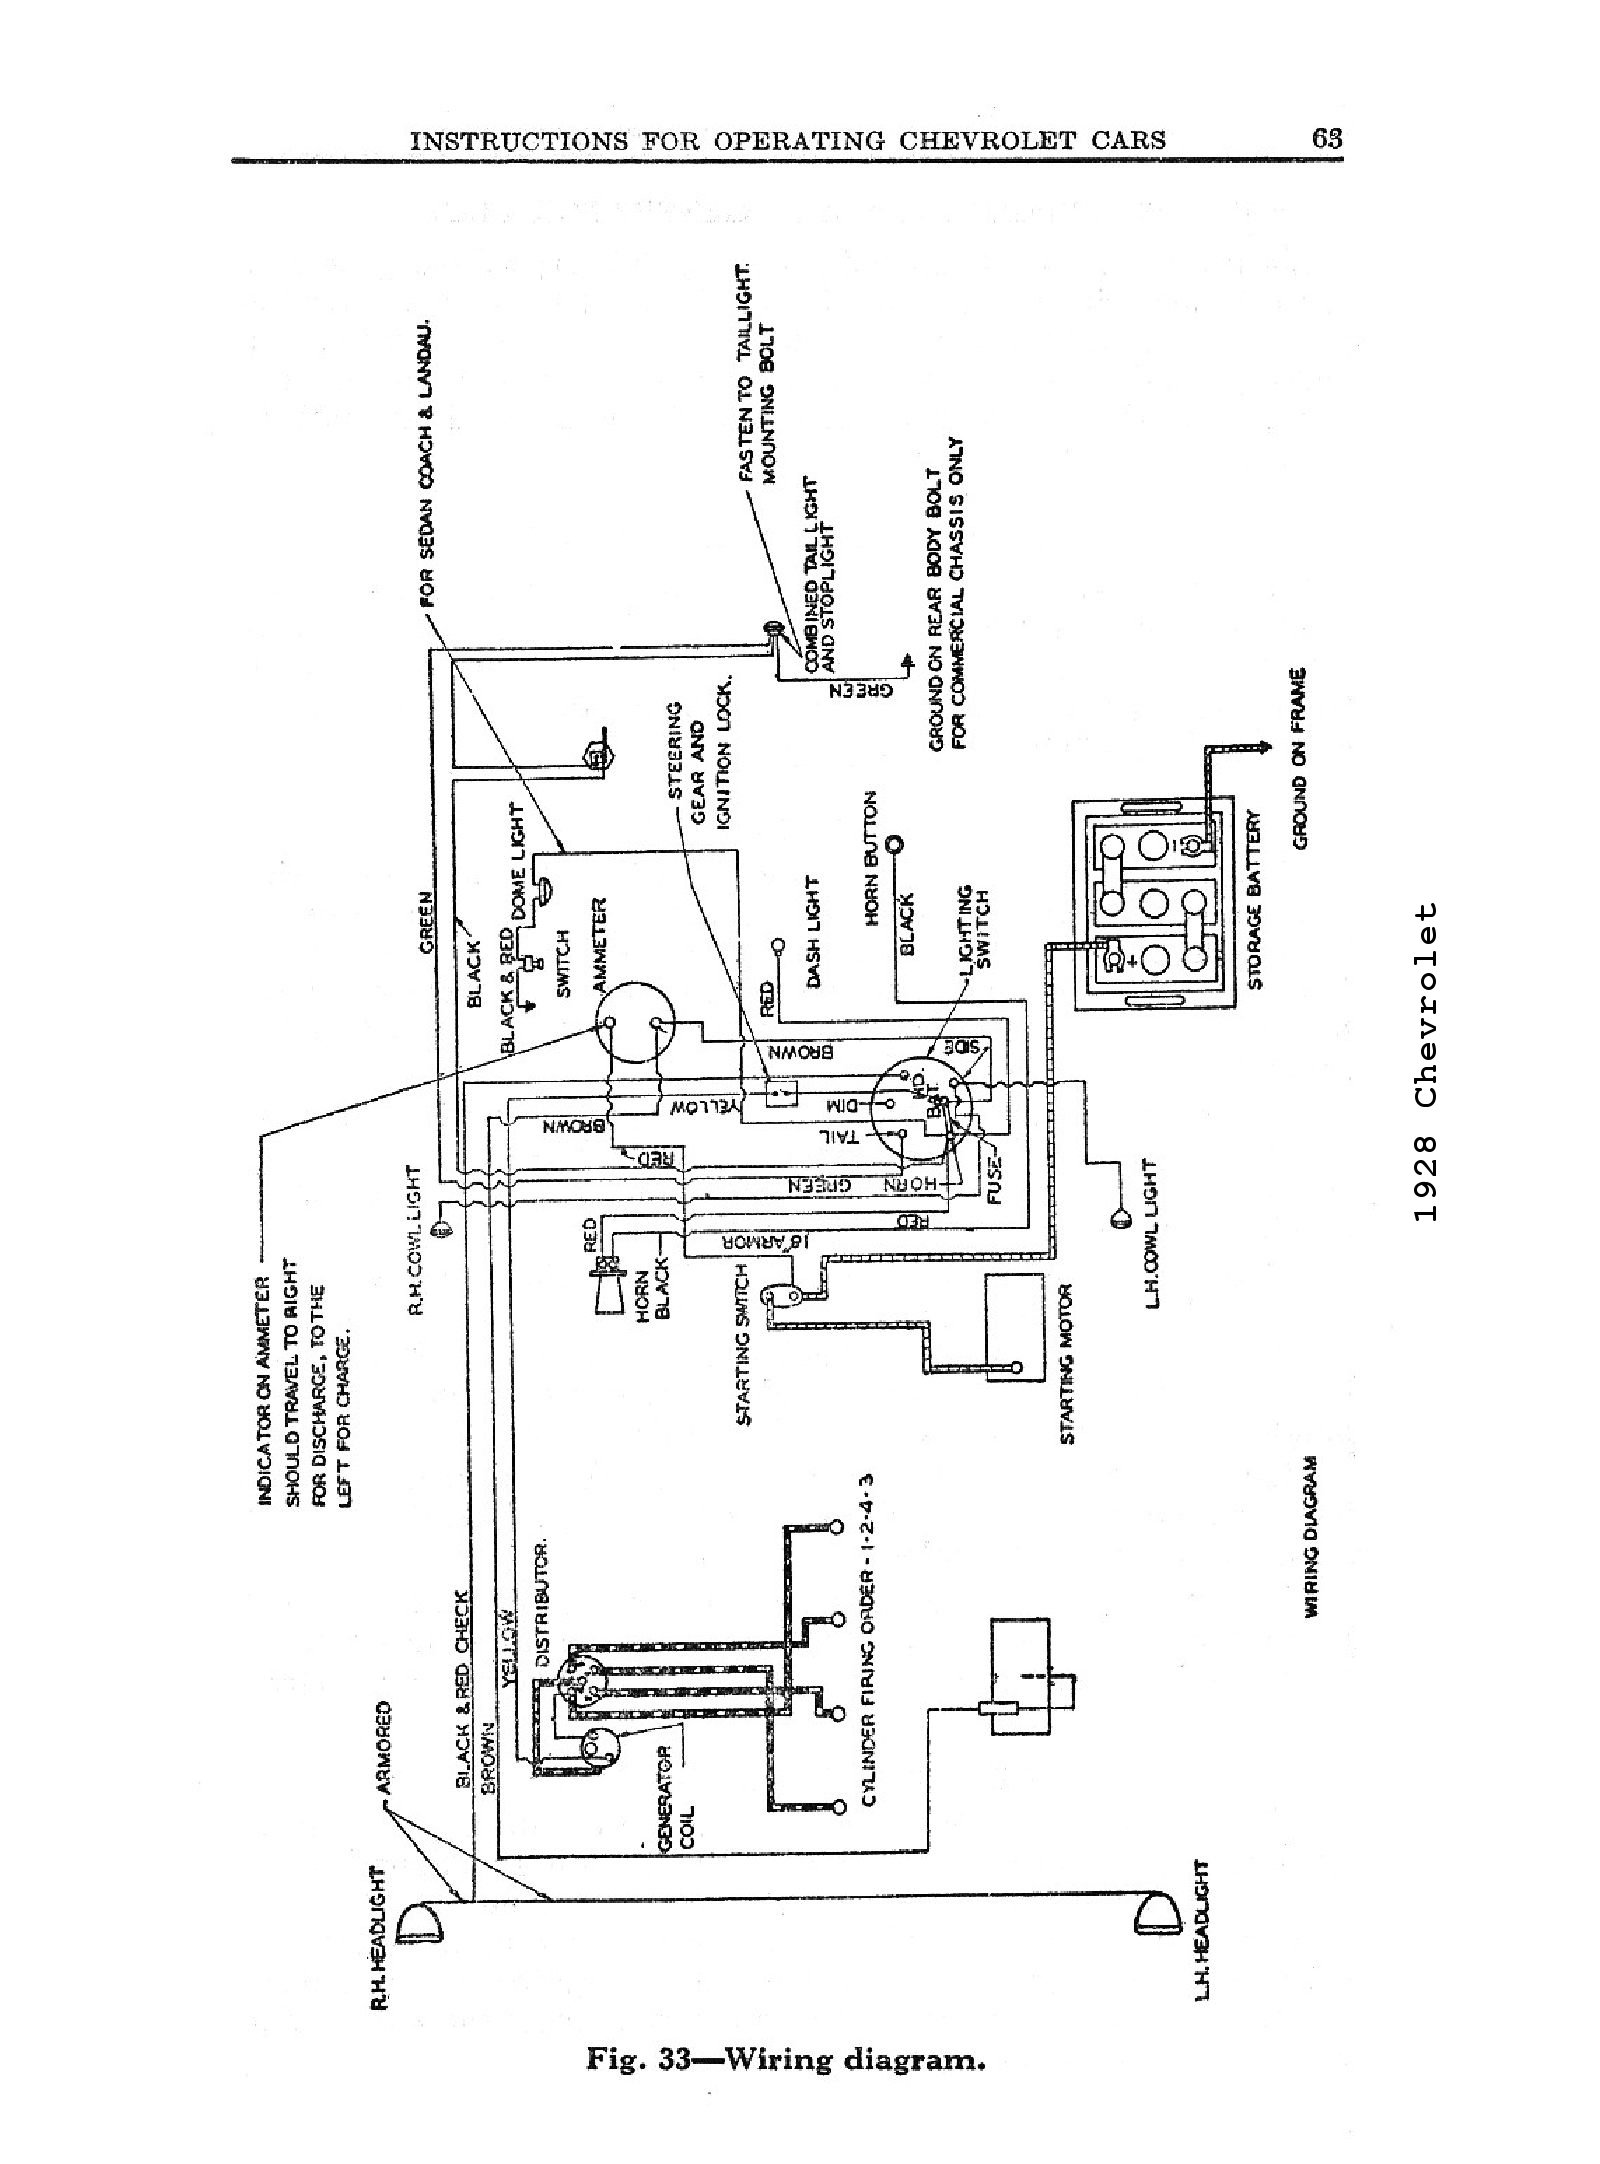 hight resolution of 1954 ford steering column wiring diagrams wiring diagrams scematic rh 15 jessicadonath de 1991 chevy steering